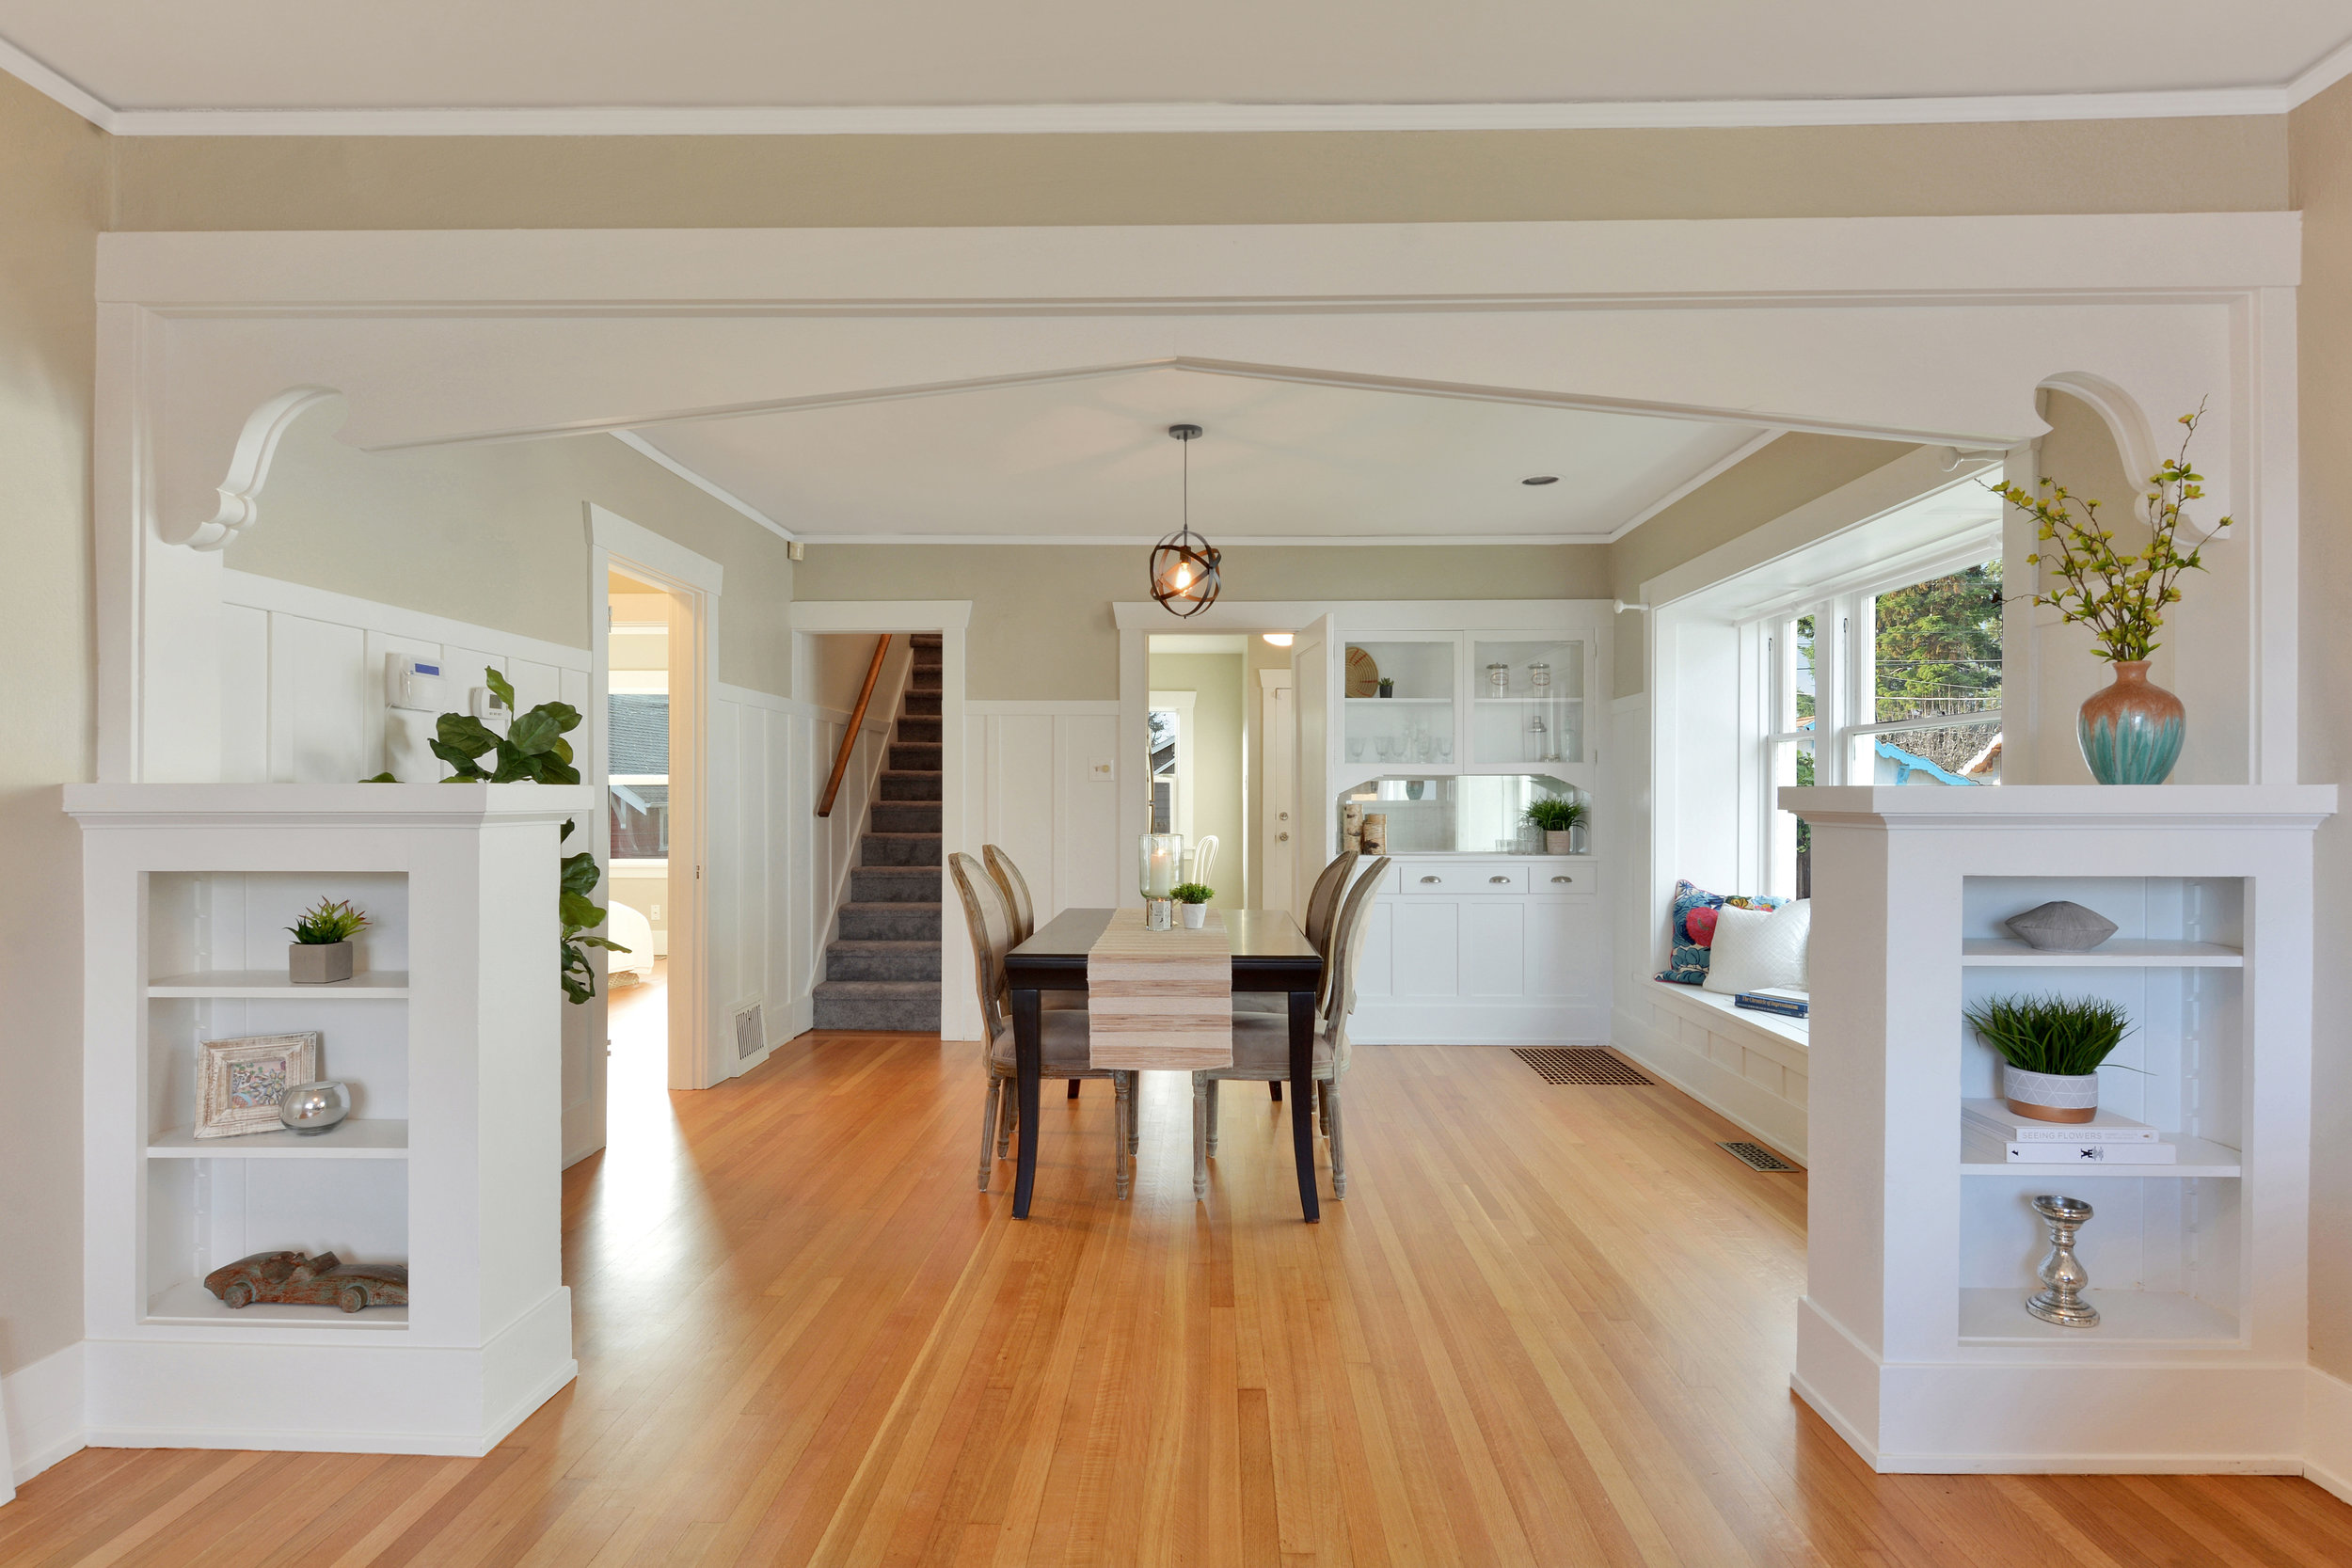 A decorative arch connects the living to the dining room with its wainscoting, built-in buffet, window seat, and refinished oak floors.